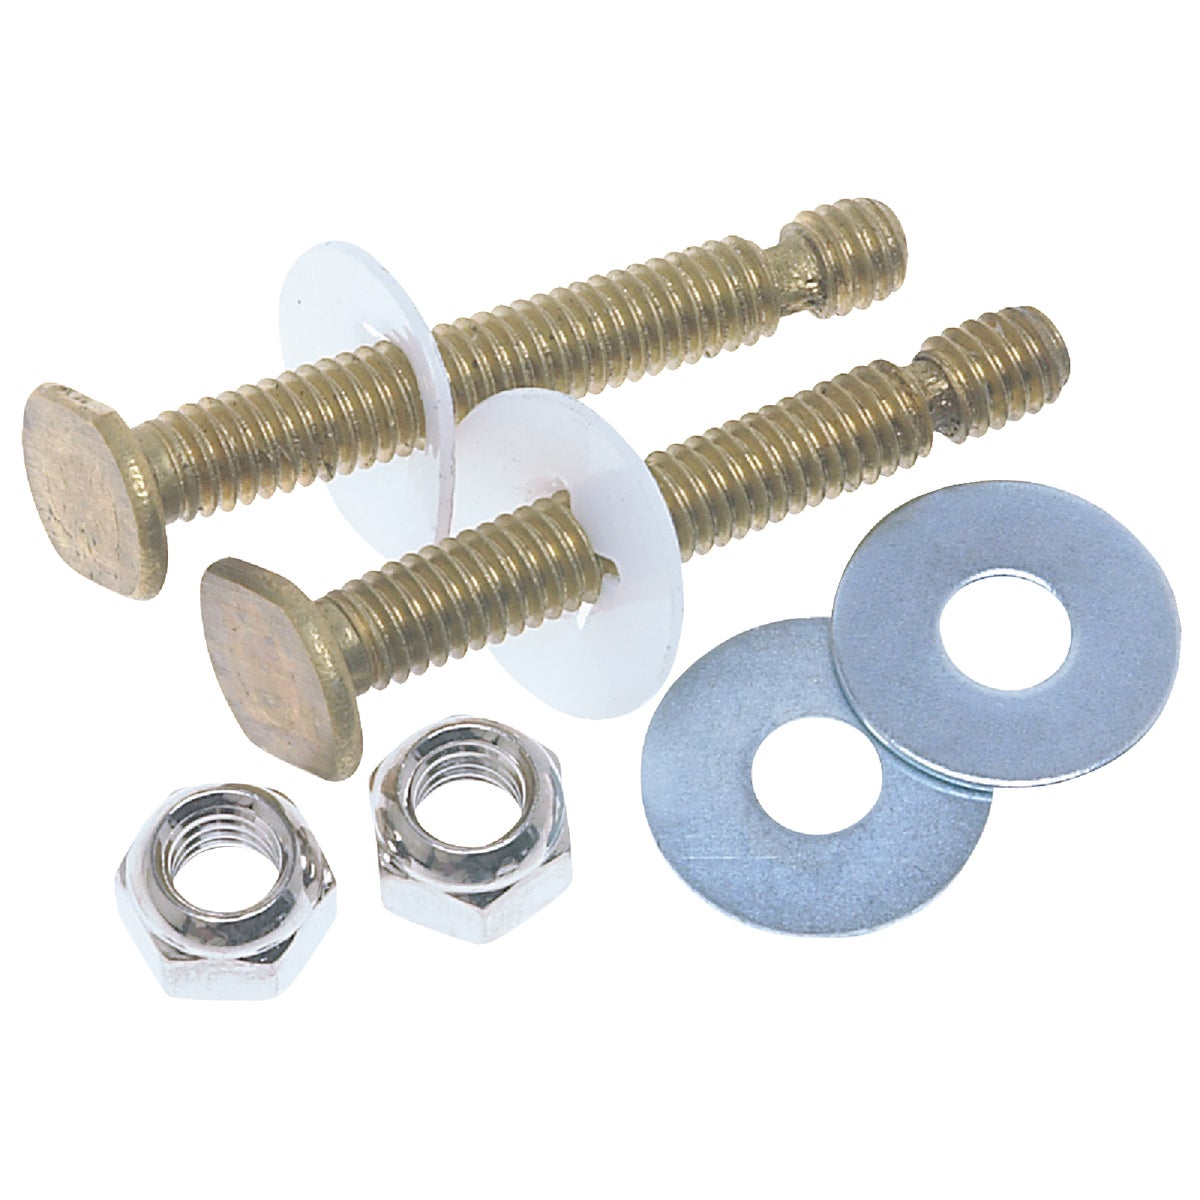 "5/16"" TOILET BOLT SET"